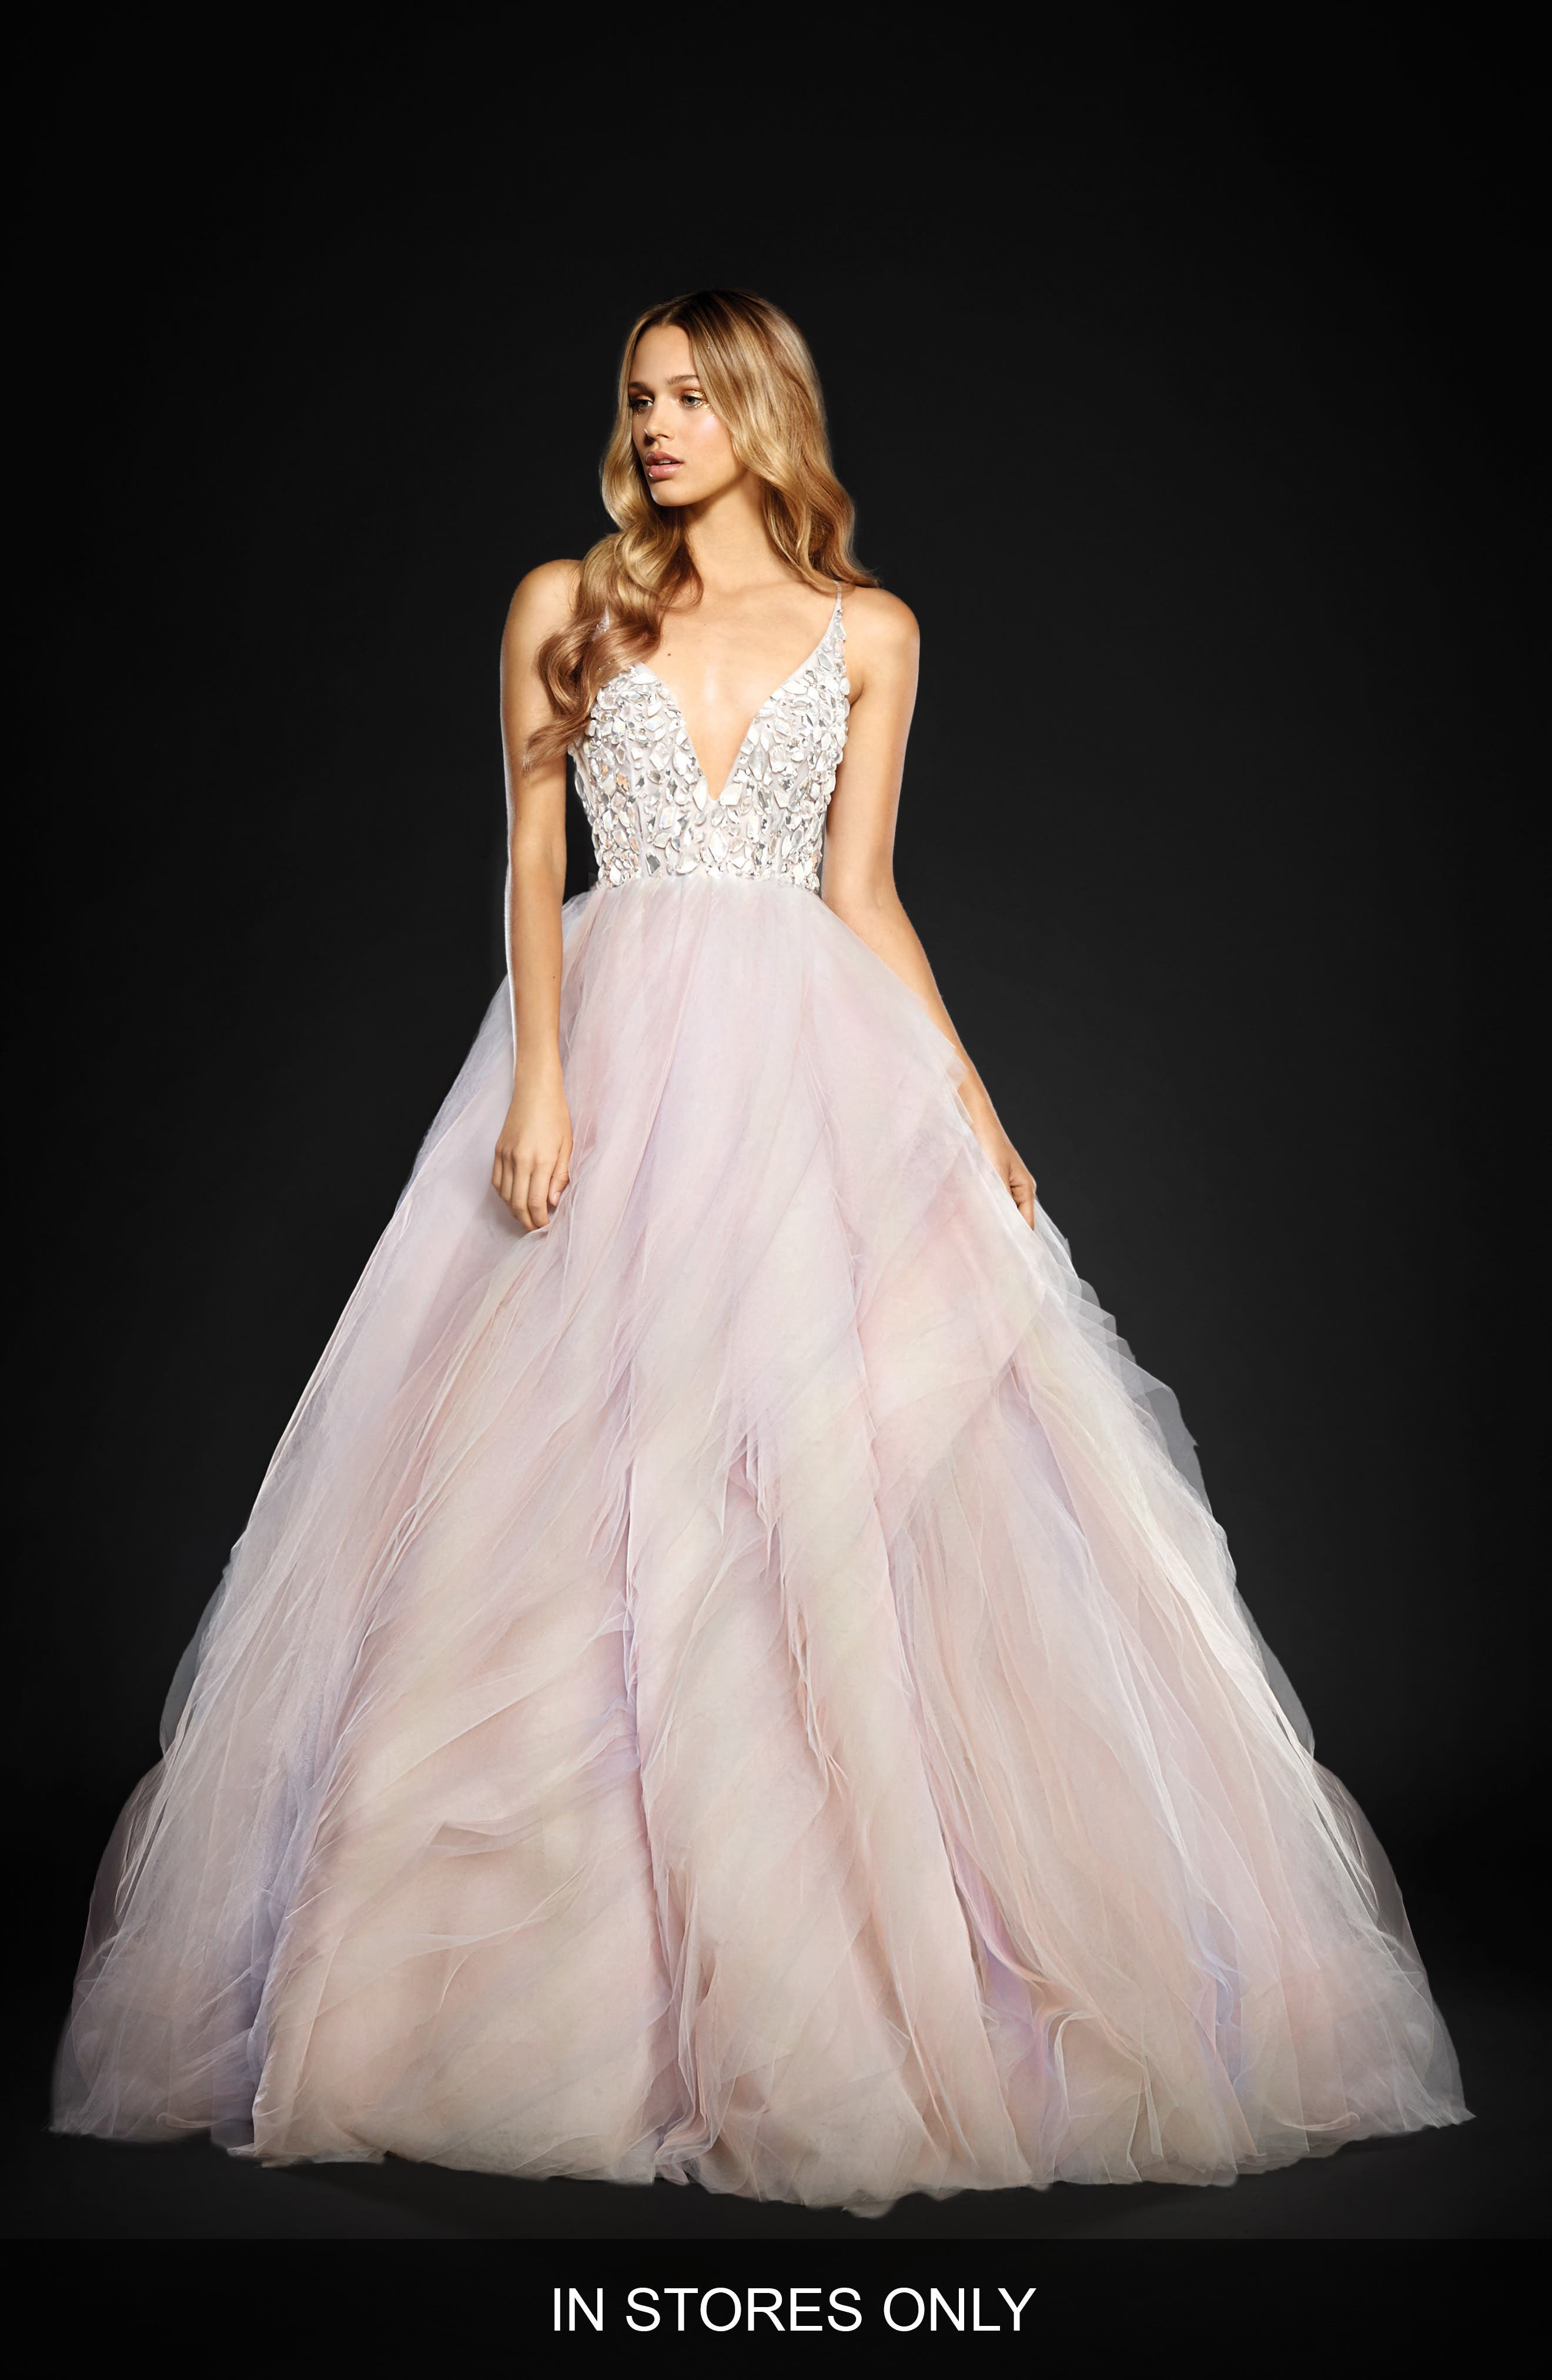 Jem Rock Candy Embellished Tulle Ballgown,                             Alternate thumbnail 3, color,                             900